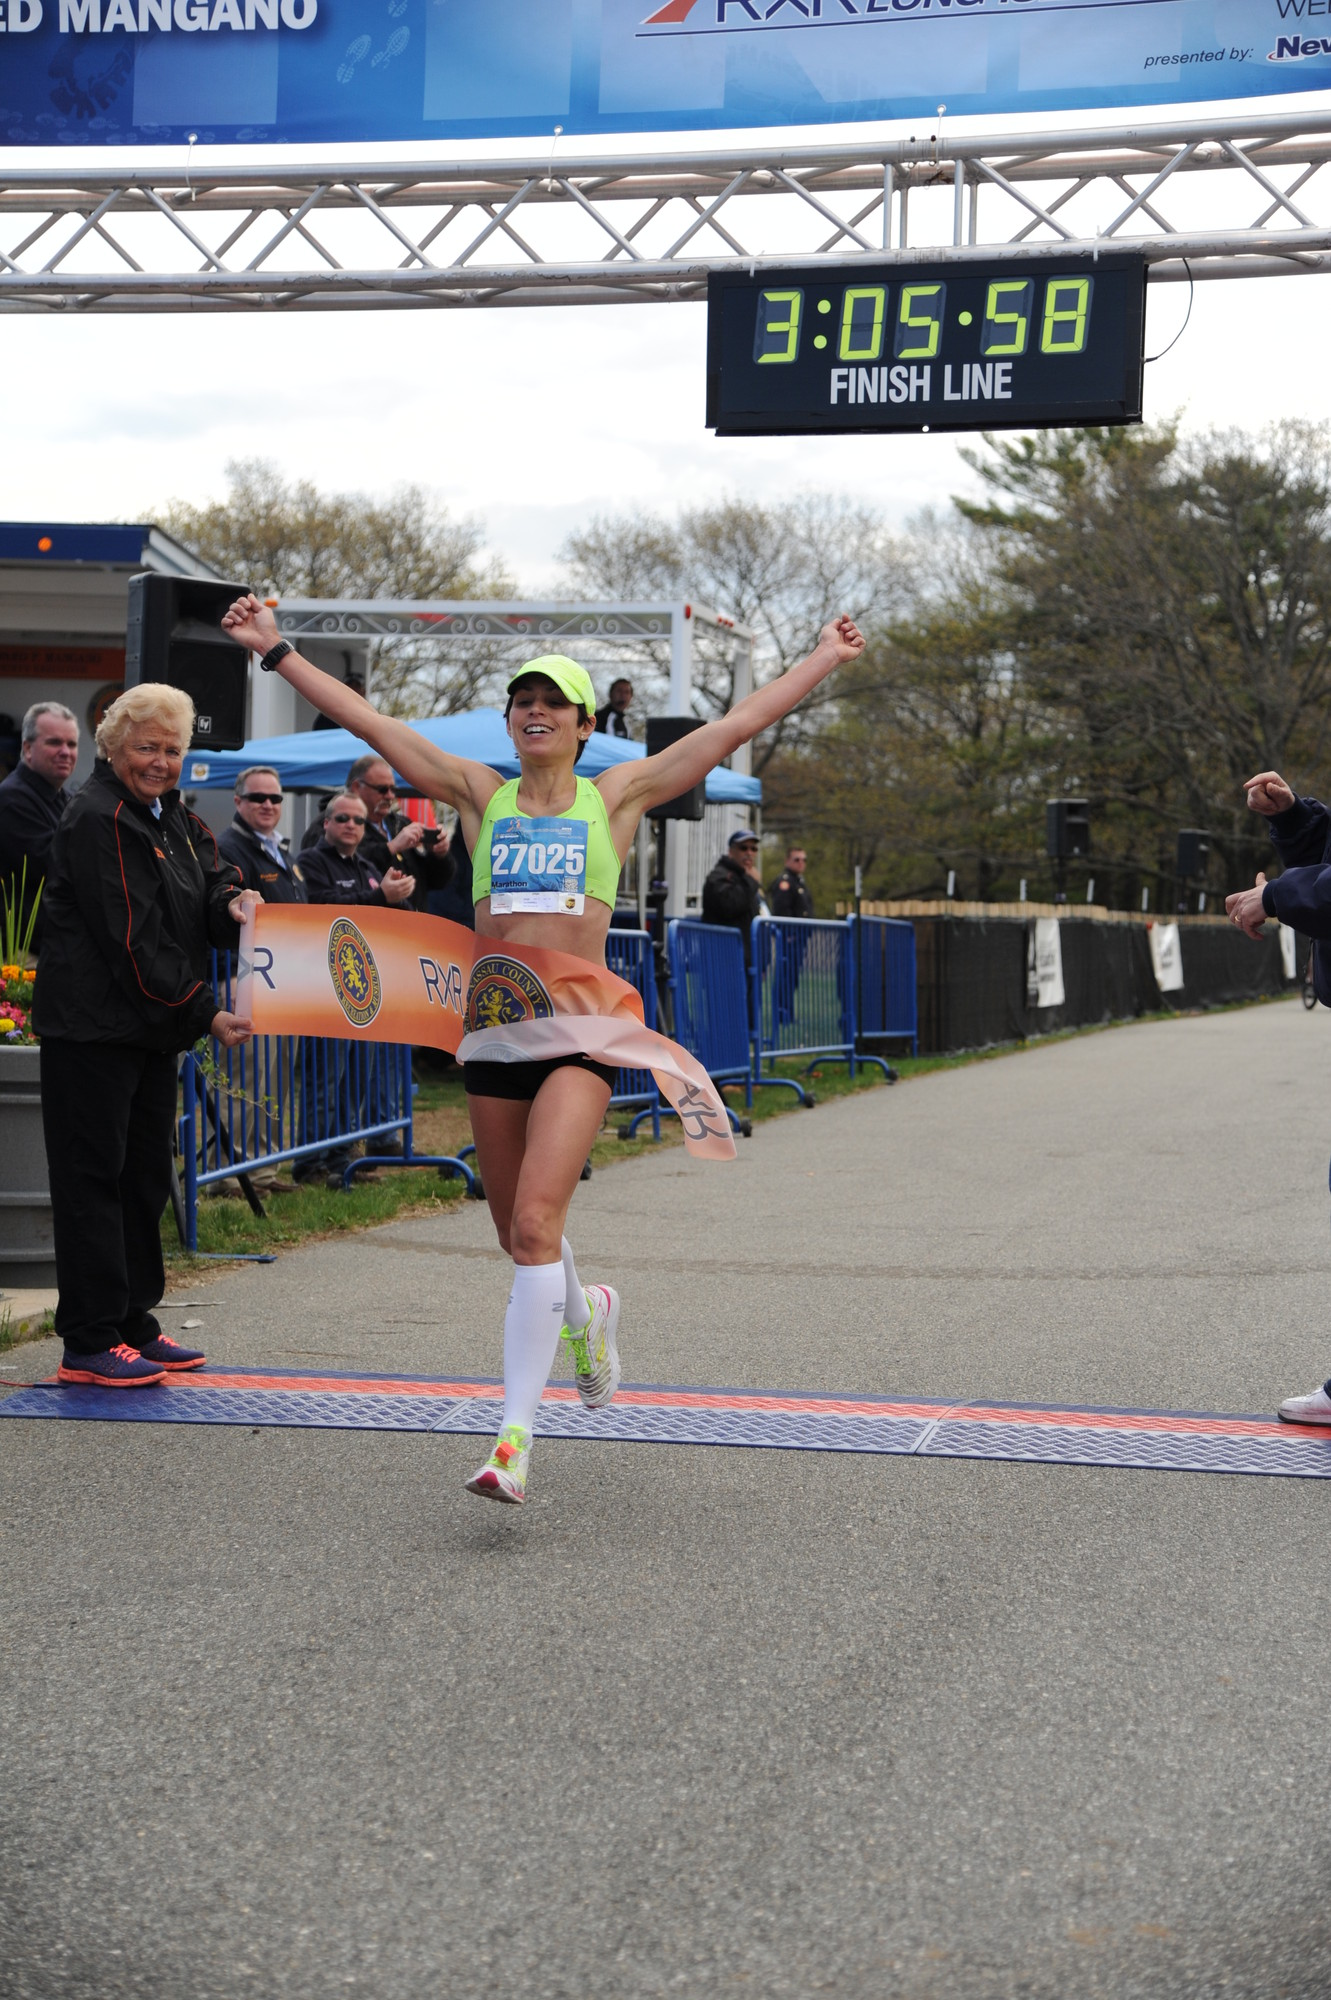 Tara Farrell, 35, of East Quoque, was the first female finisher of the 26.2-mile race.